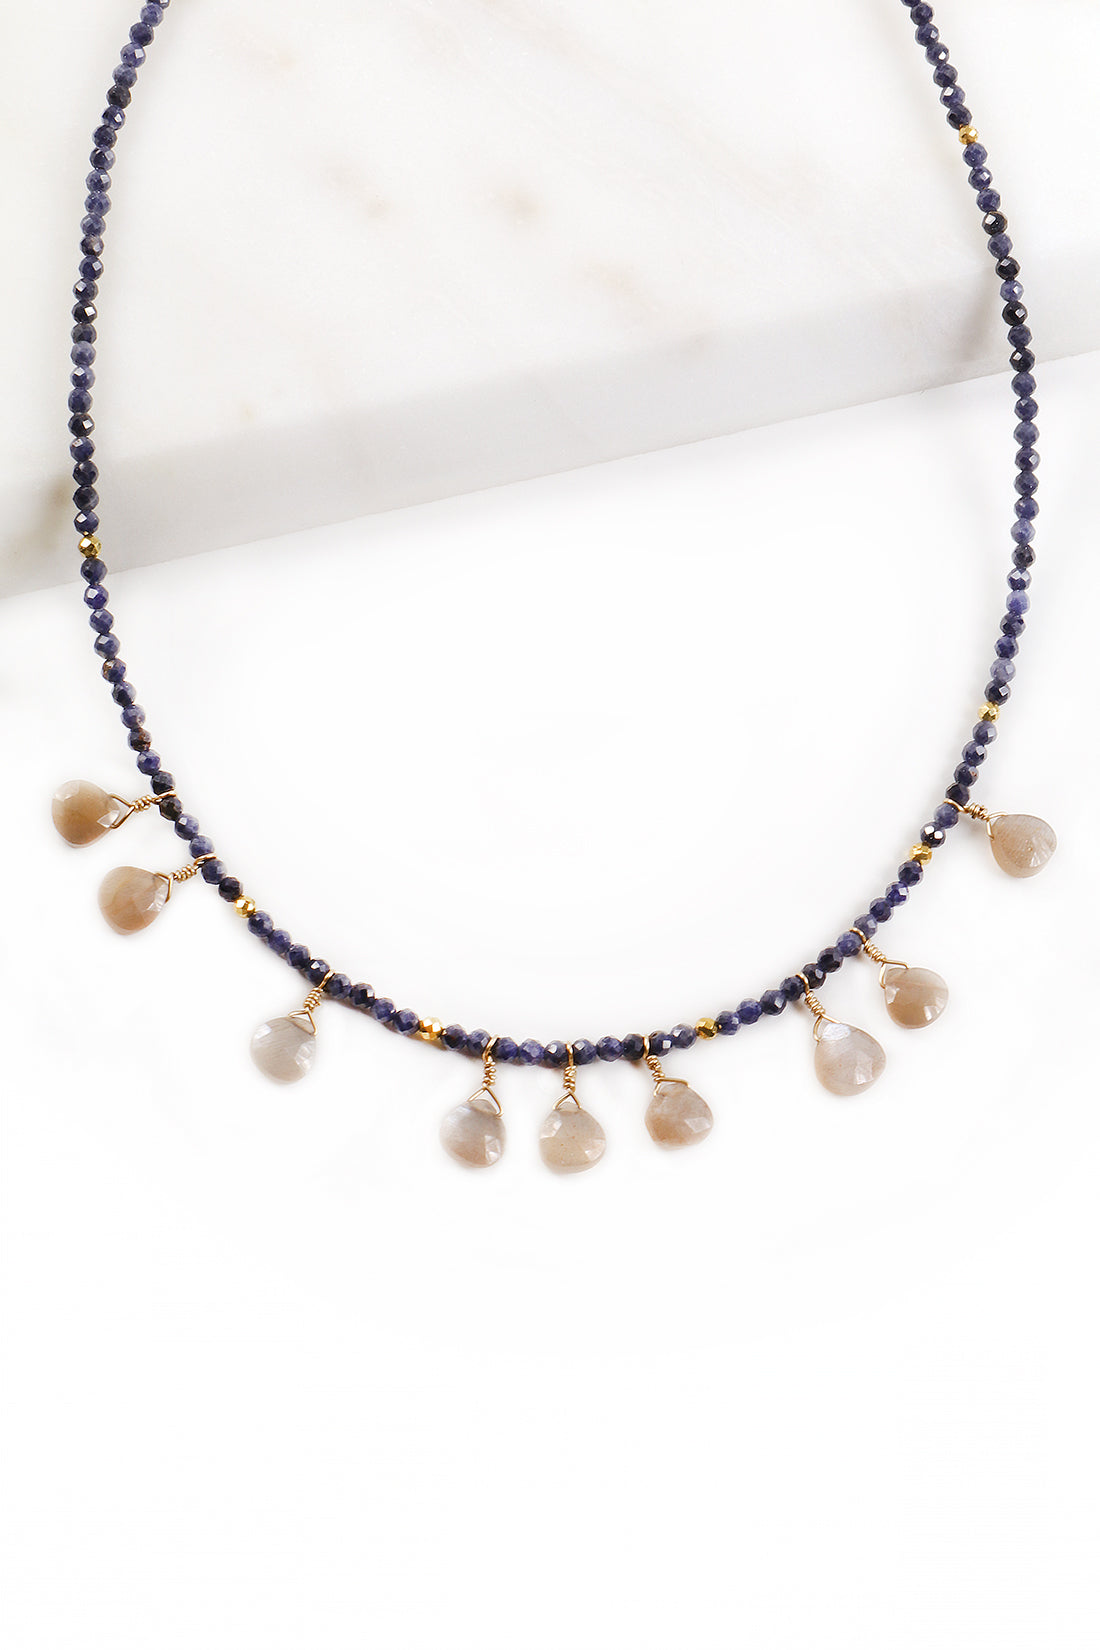 Sapphire Peach Moonstone Necklace